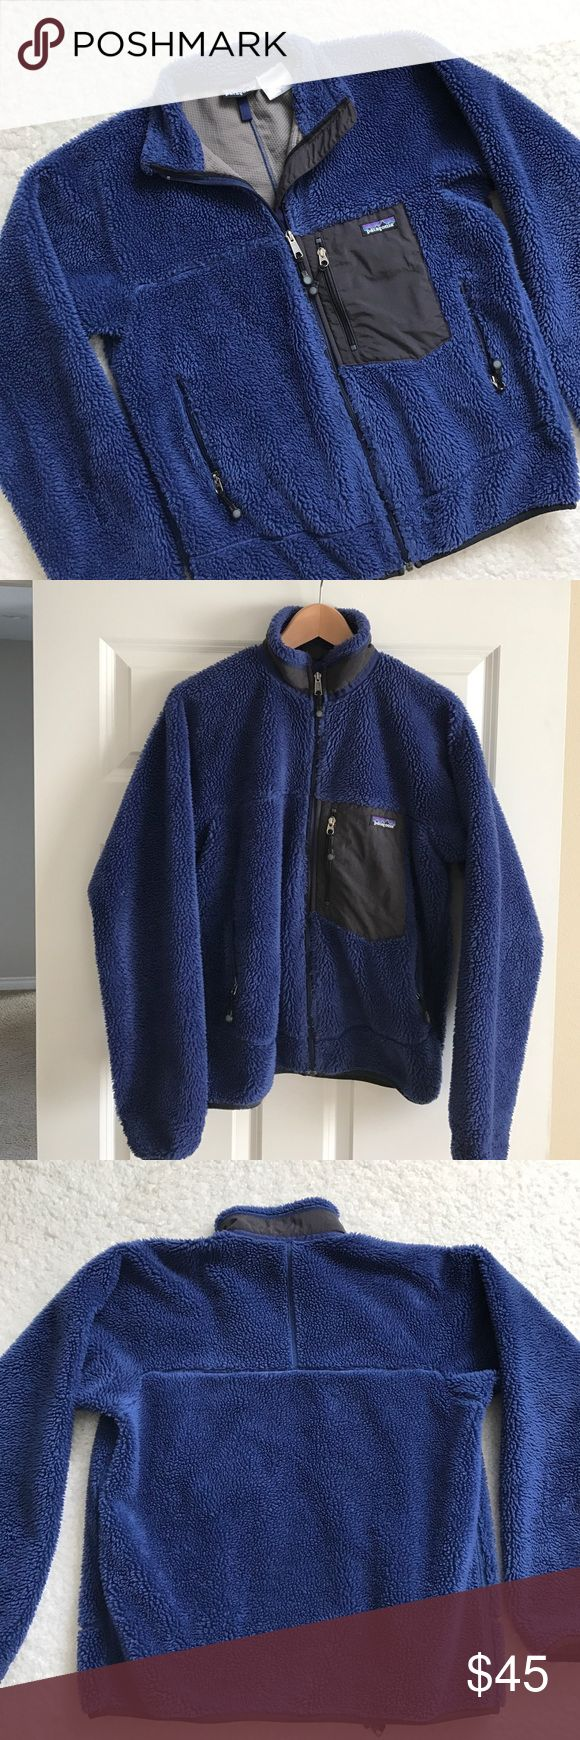 """Patagonia Men's Jacket This jacket is so cute!  Men's size small.  It does show some wash wear and a little bit of matting in spots.  The inside is in great condition.  Measurements laying flat are approximately:  Chest 21"""".  Length 25"""". Patagonia Jackets & Coats"""